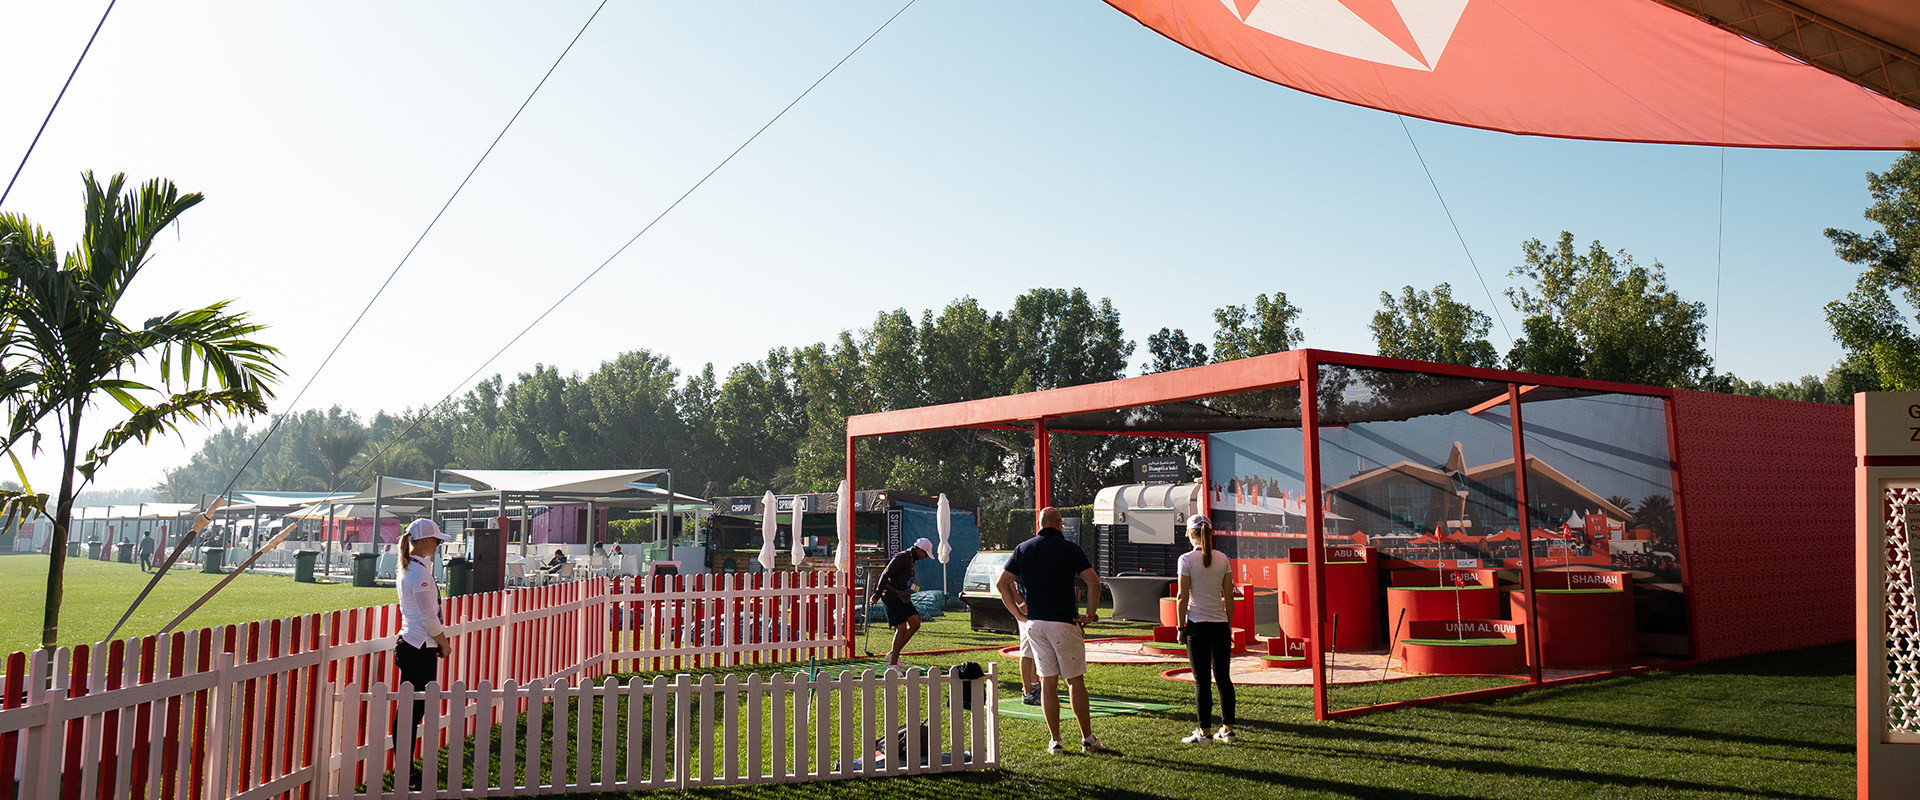 WA3F_HSBC Fan Village_007.jpg